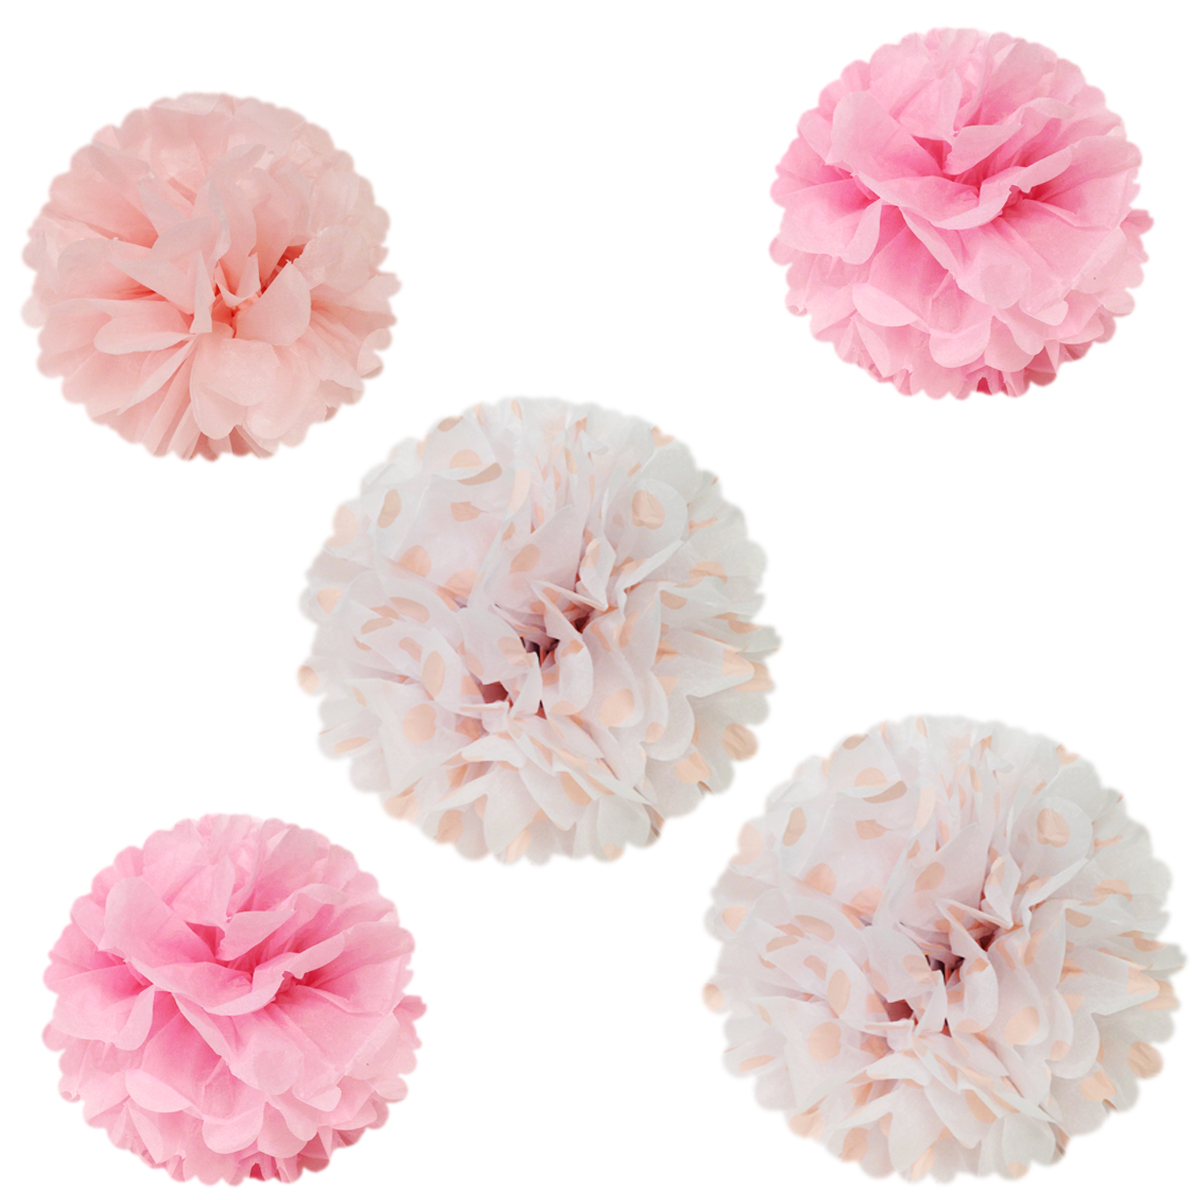 "Wrapables 12"" & 8"" Set of 5 Tissue Pom Poms Party Decorations for Weddings, Birthday Parties Baby Showers and Nursery Décor, Pink & Polka Dots"